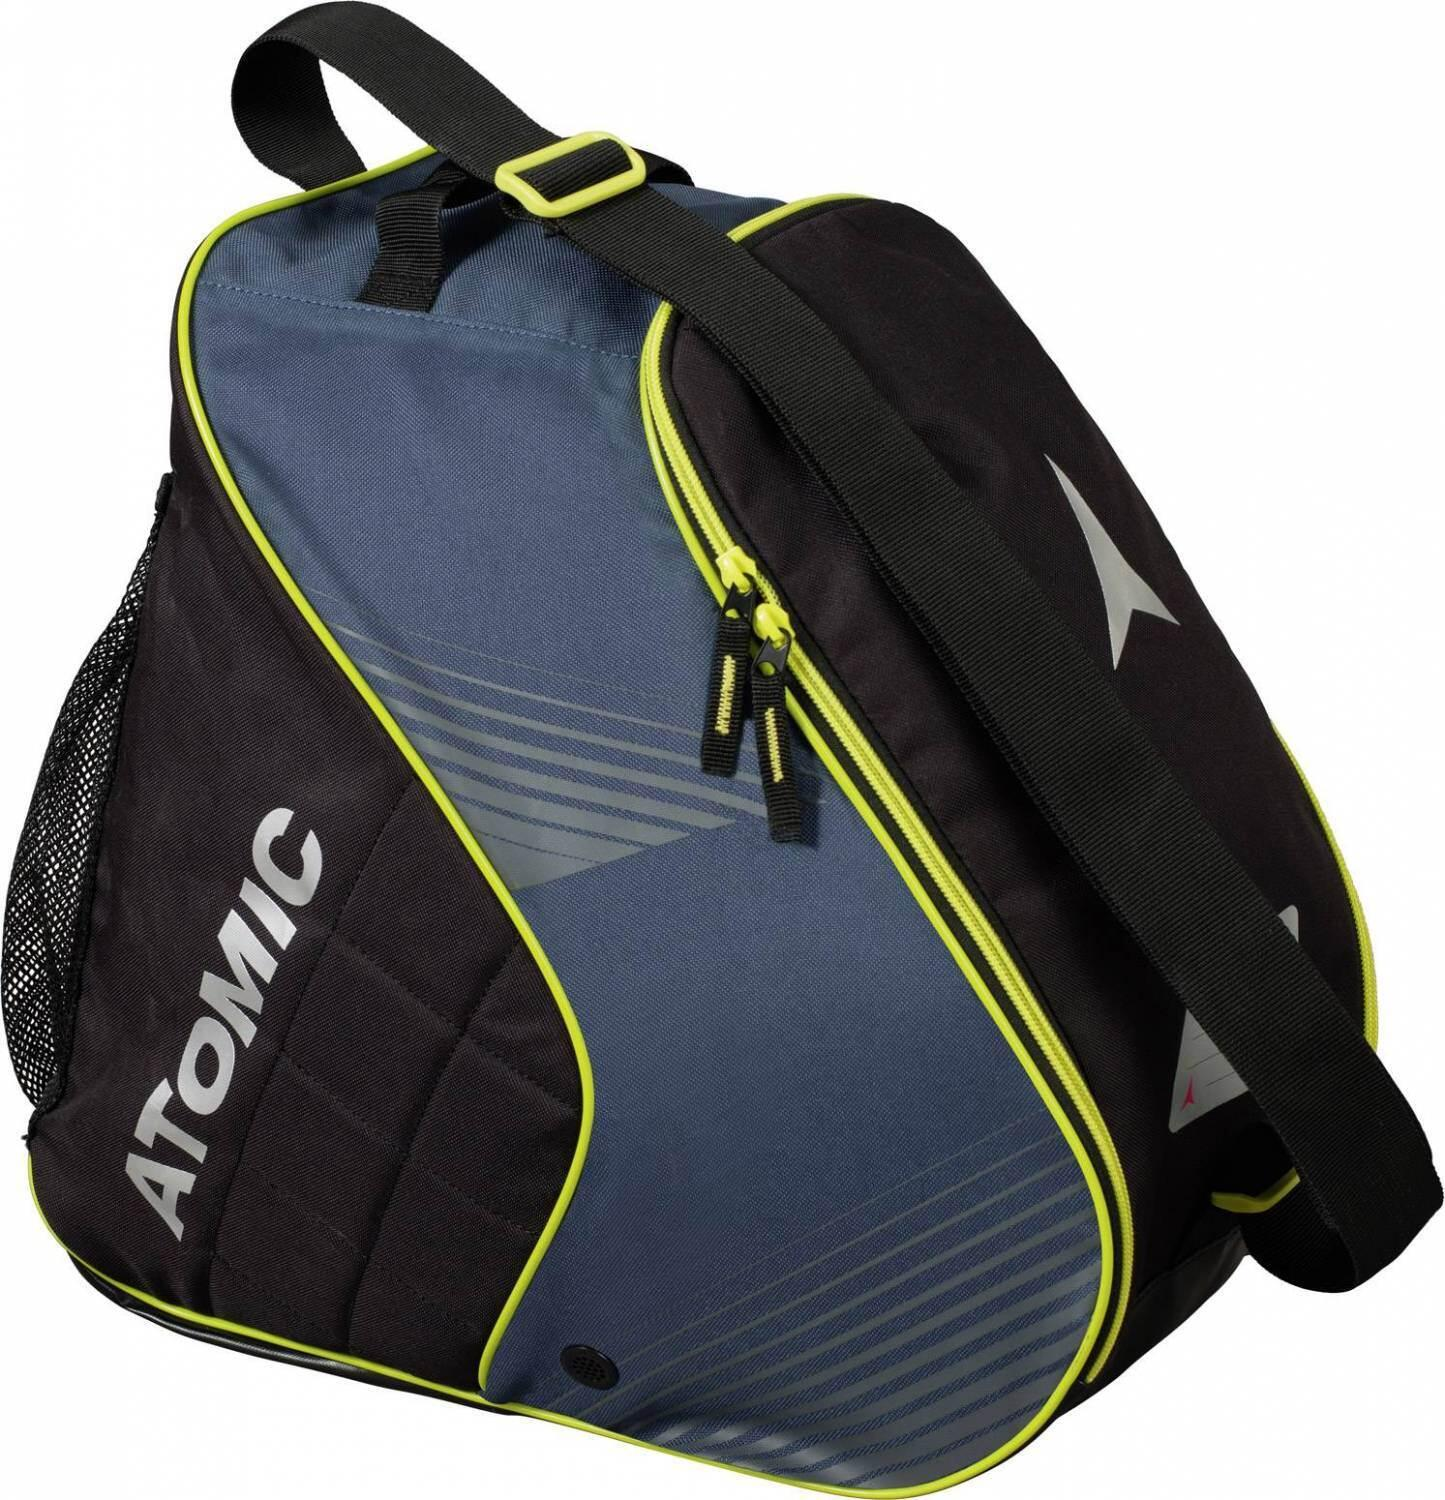 atomic-boot-bag-plus-skischuhtasche-farbe-shade-wild-lime-